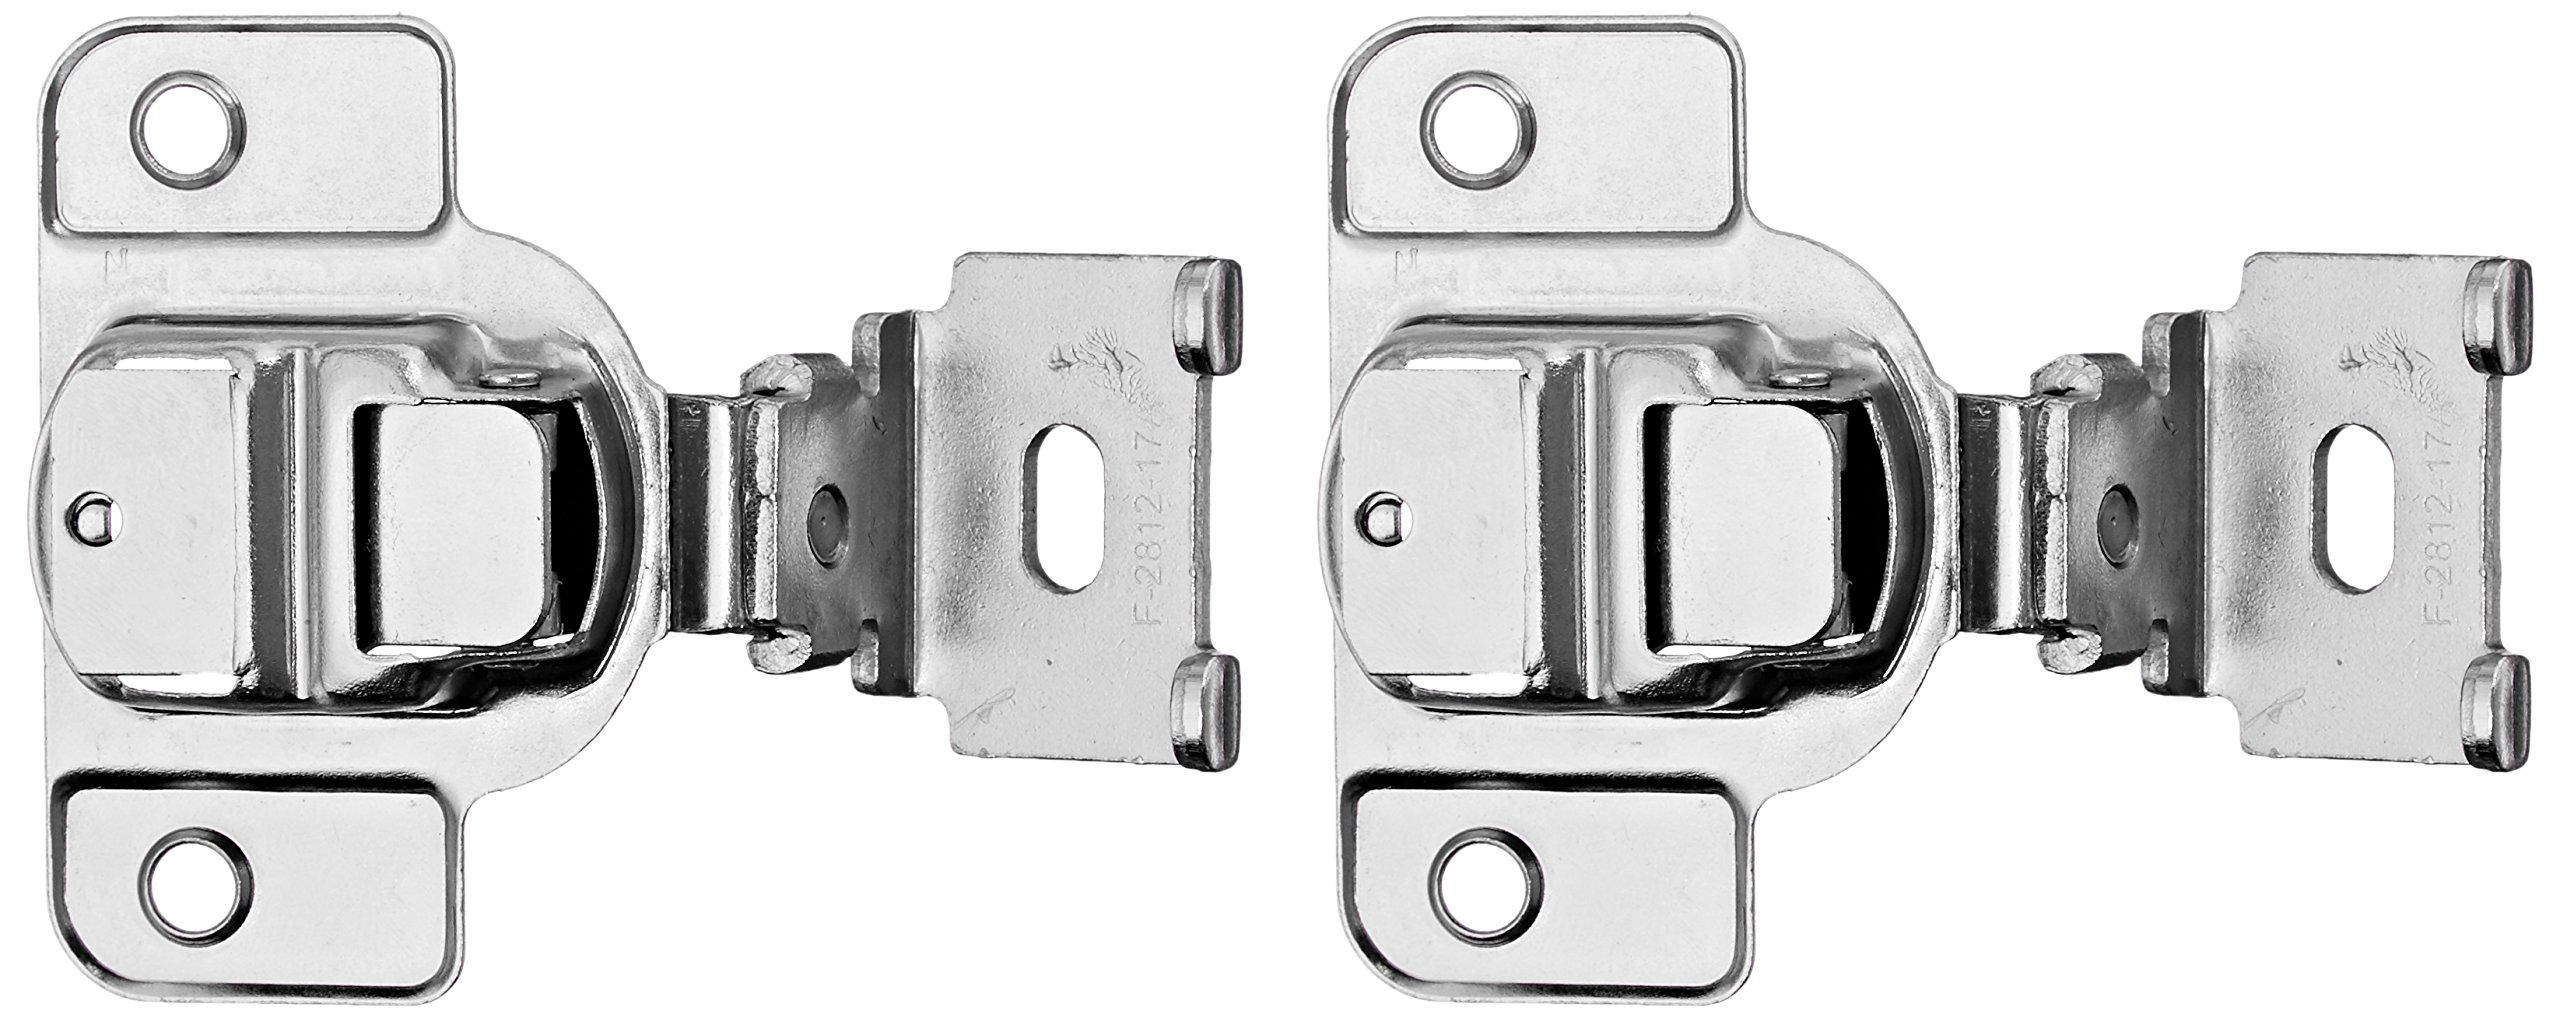 Amerock BP2811D1314 Matrix Concealed Hinge, 1-3/4in(45mm) Hole Pattern Hinge with 1-3/8in(35mm) Overlay - Nickel by Amerock (Image #1)